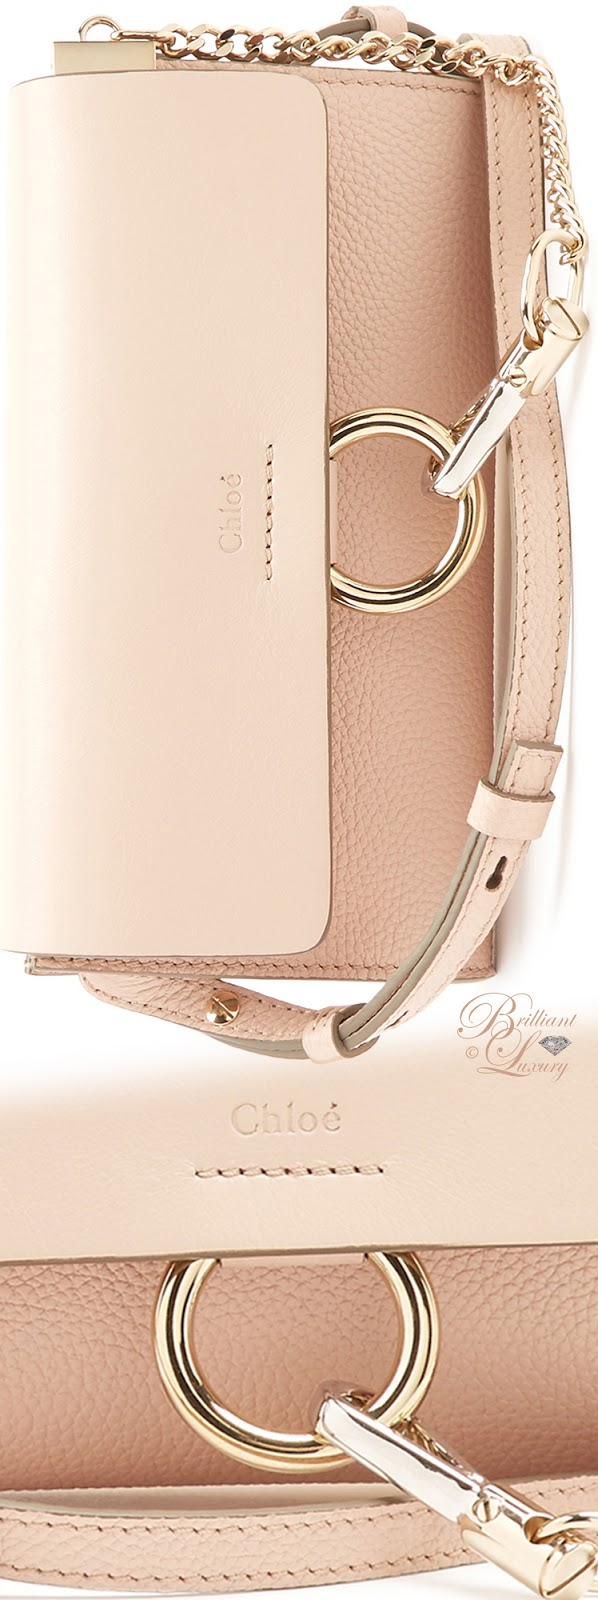 Brilliant Luxury ♦ Chloé Faye mini leather and suede cross-body bag